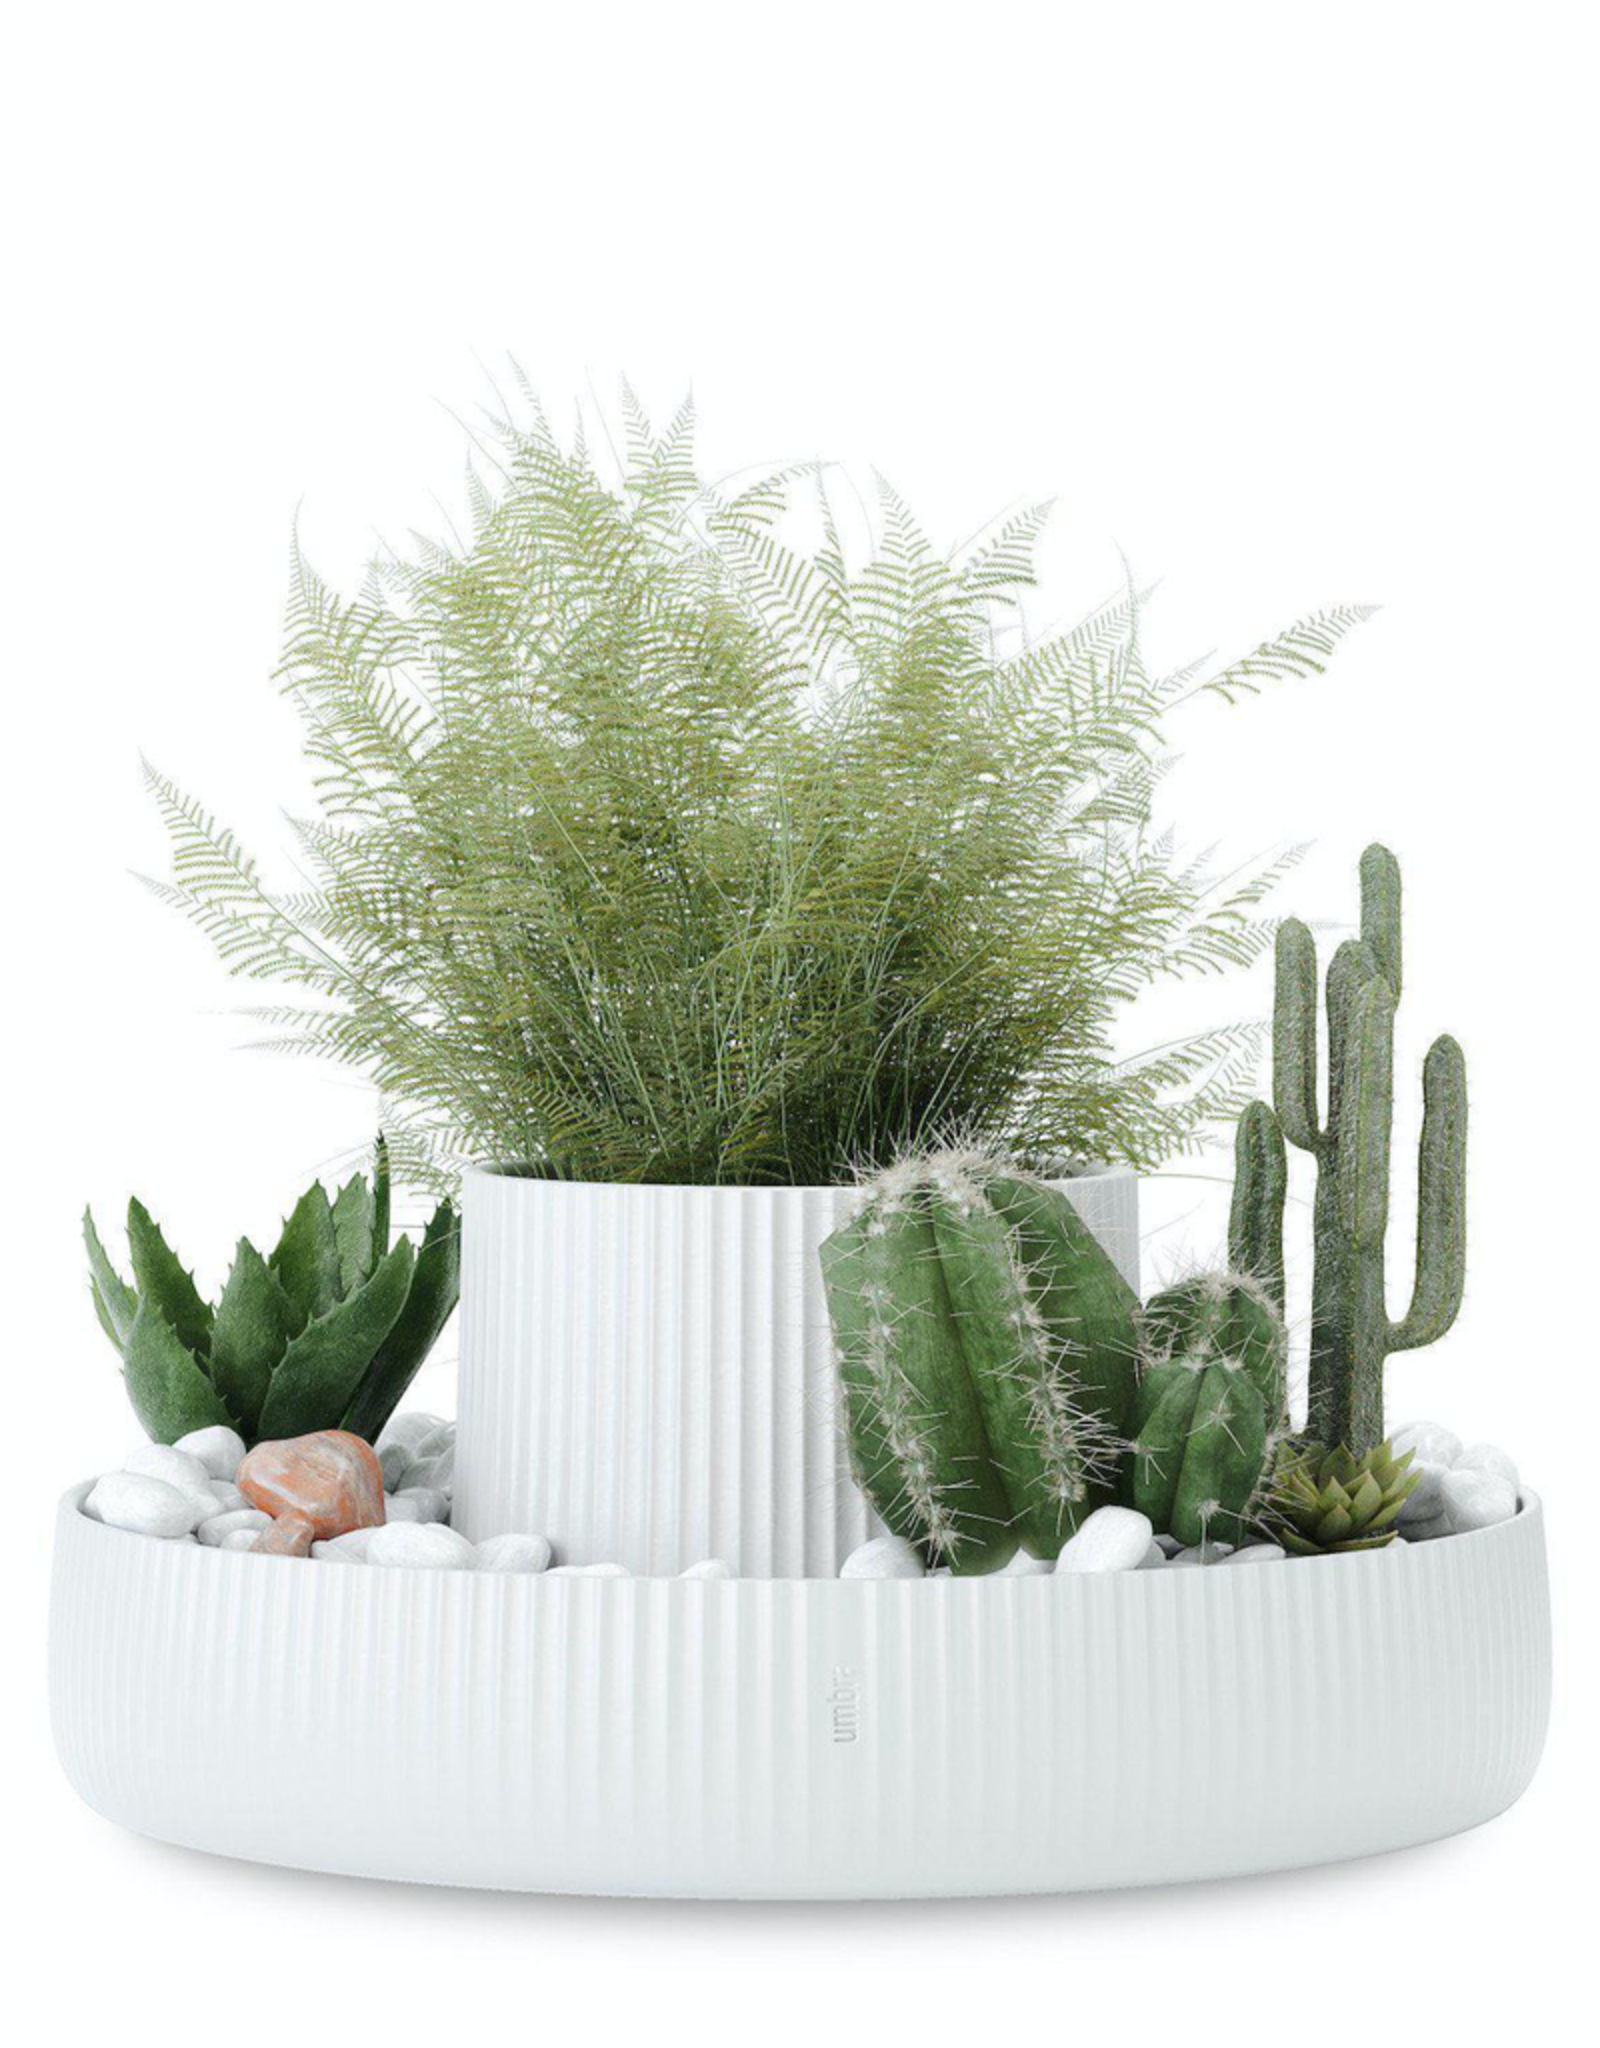 Umbra Umbra Fountain Planter-White